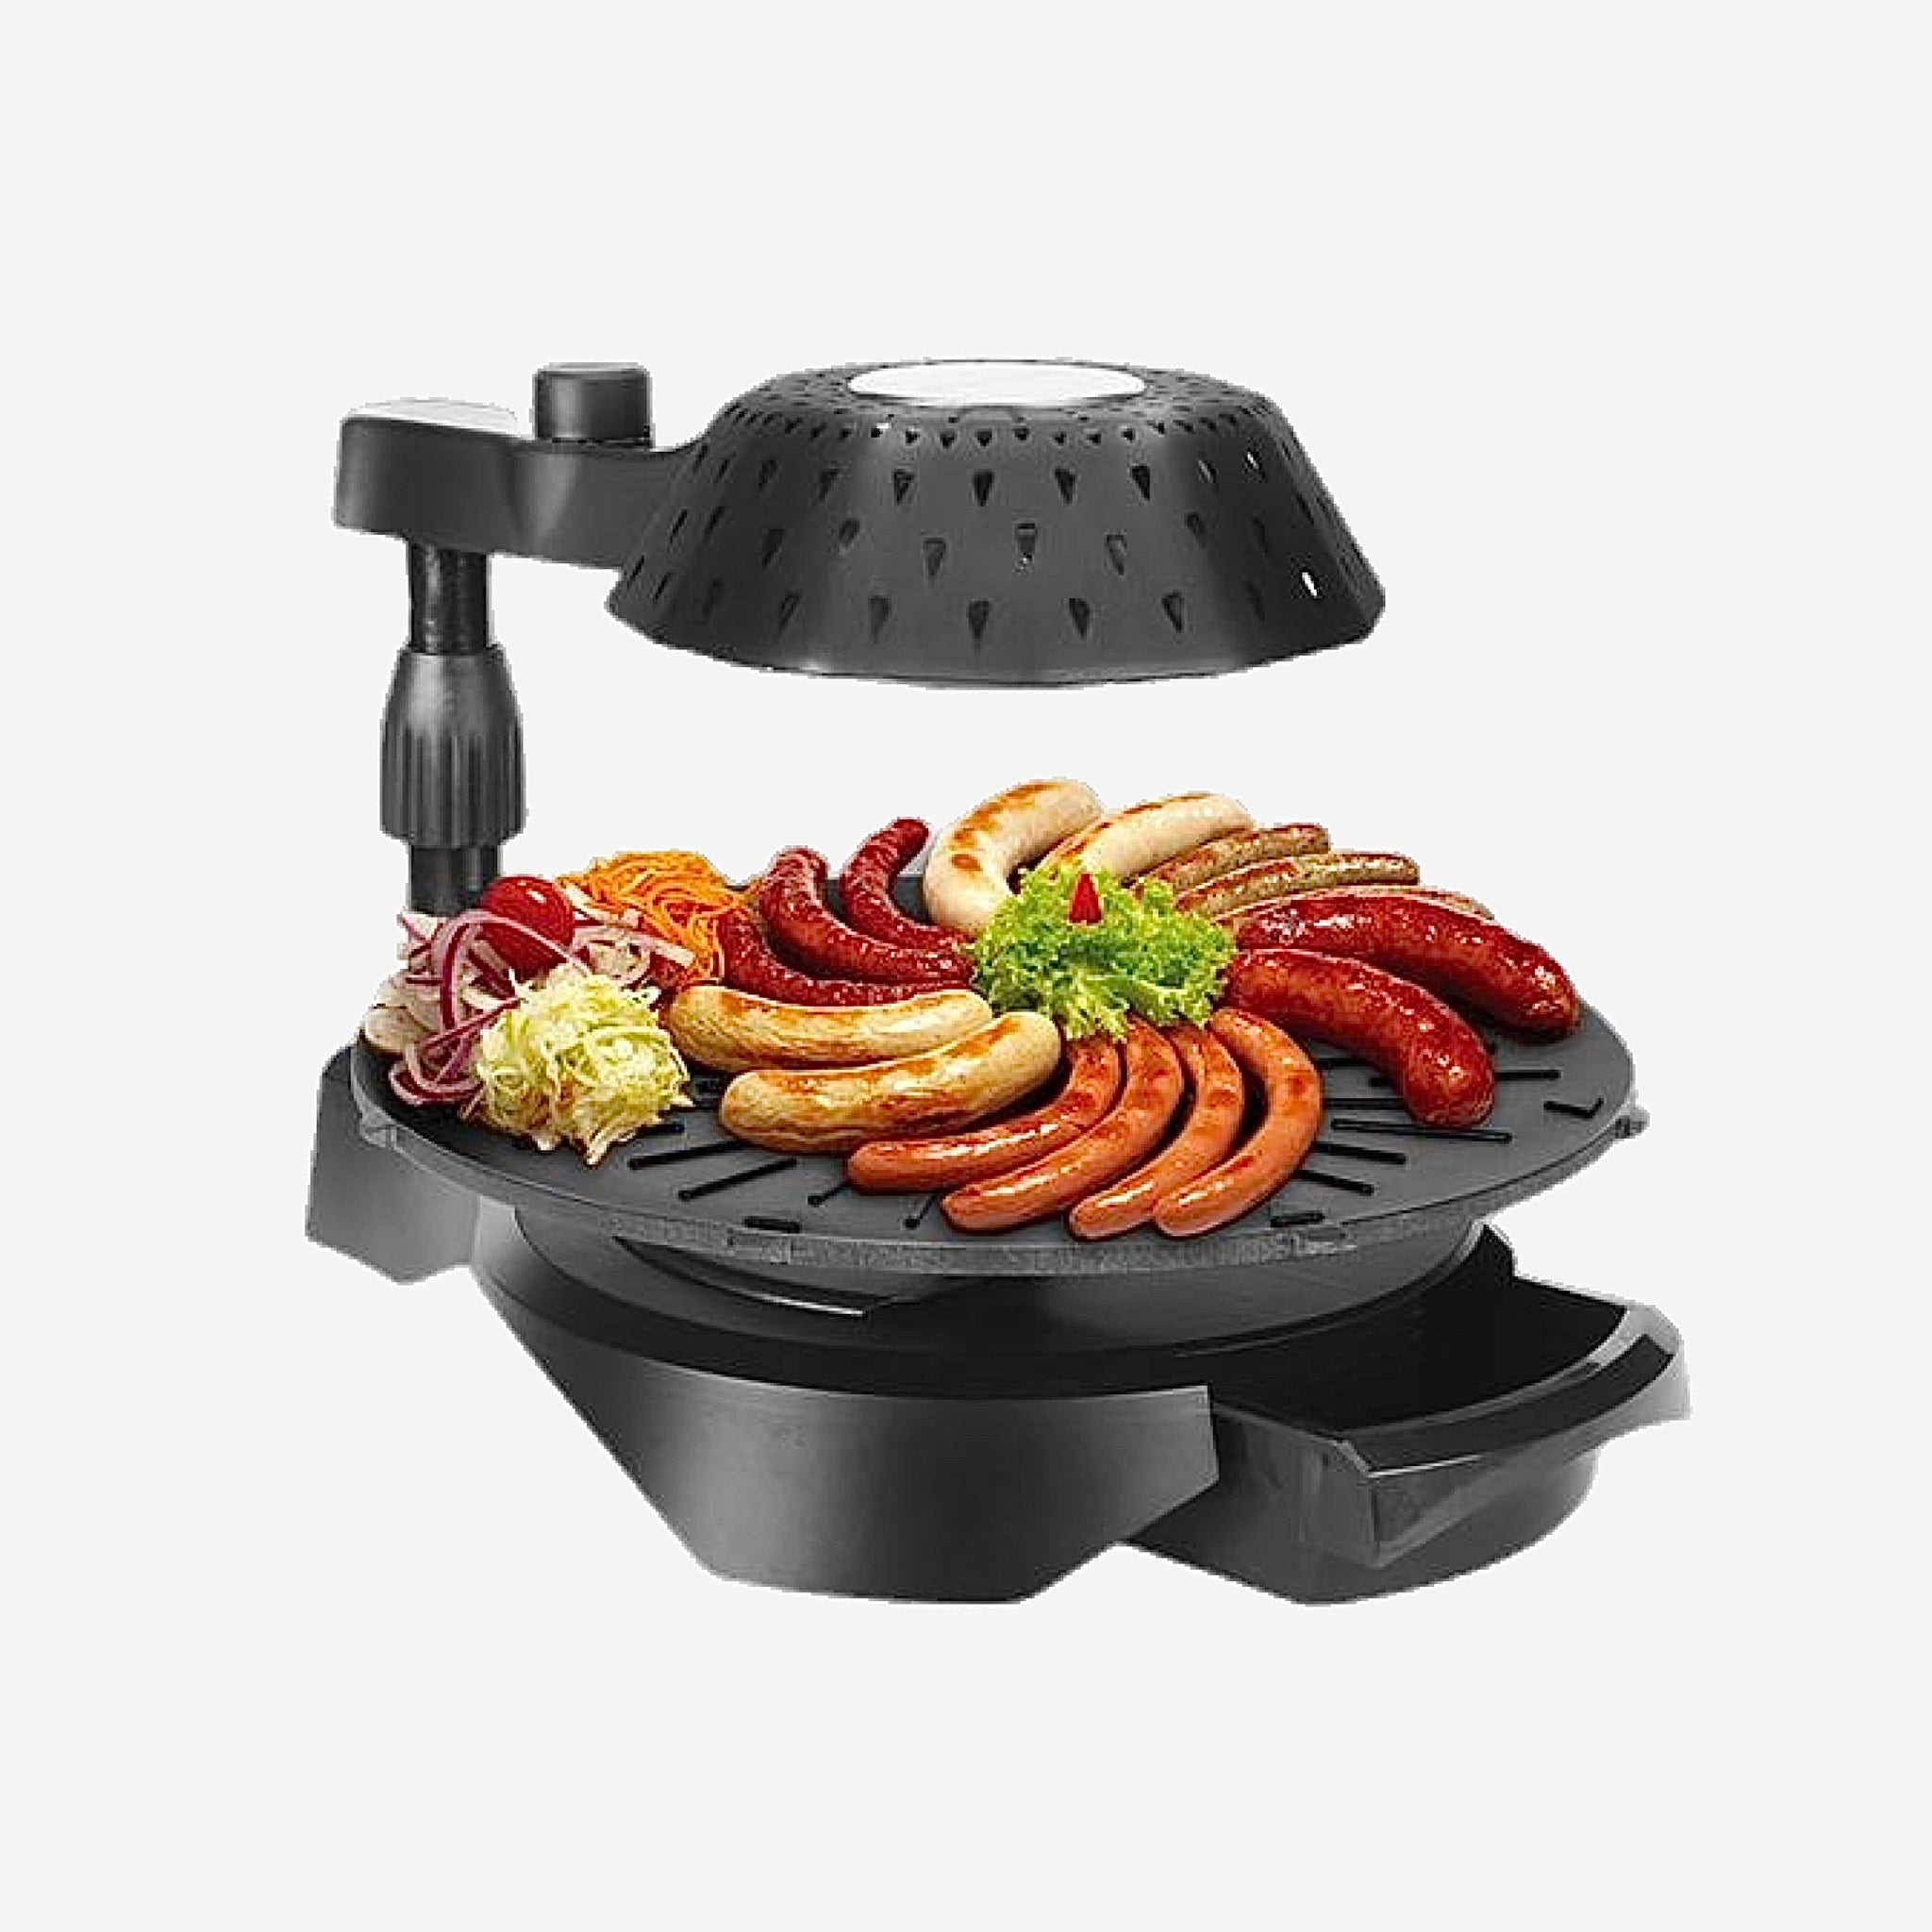 Japanese Black Rotating Infrared Grill Electric Barbecue Machine Non-stick baking pan tray Japan Home cooking appliance Trend